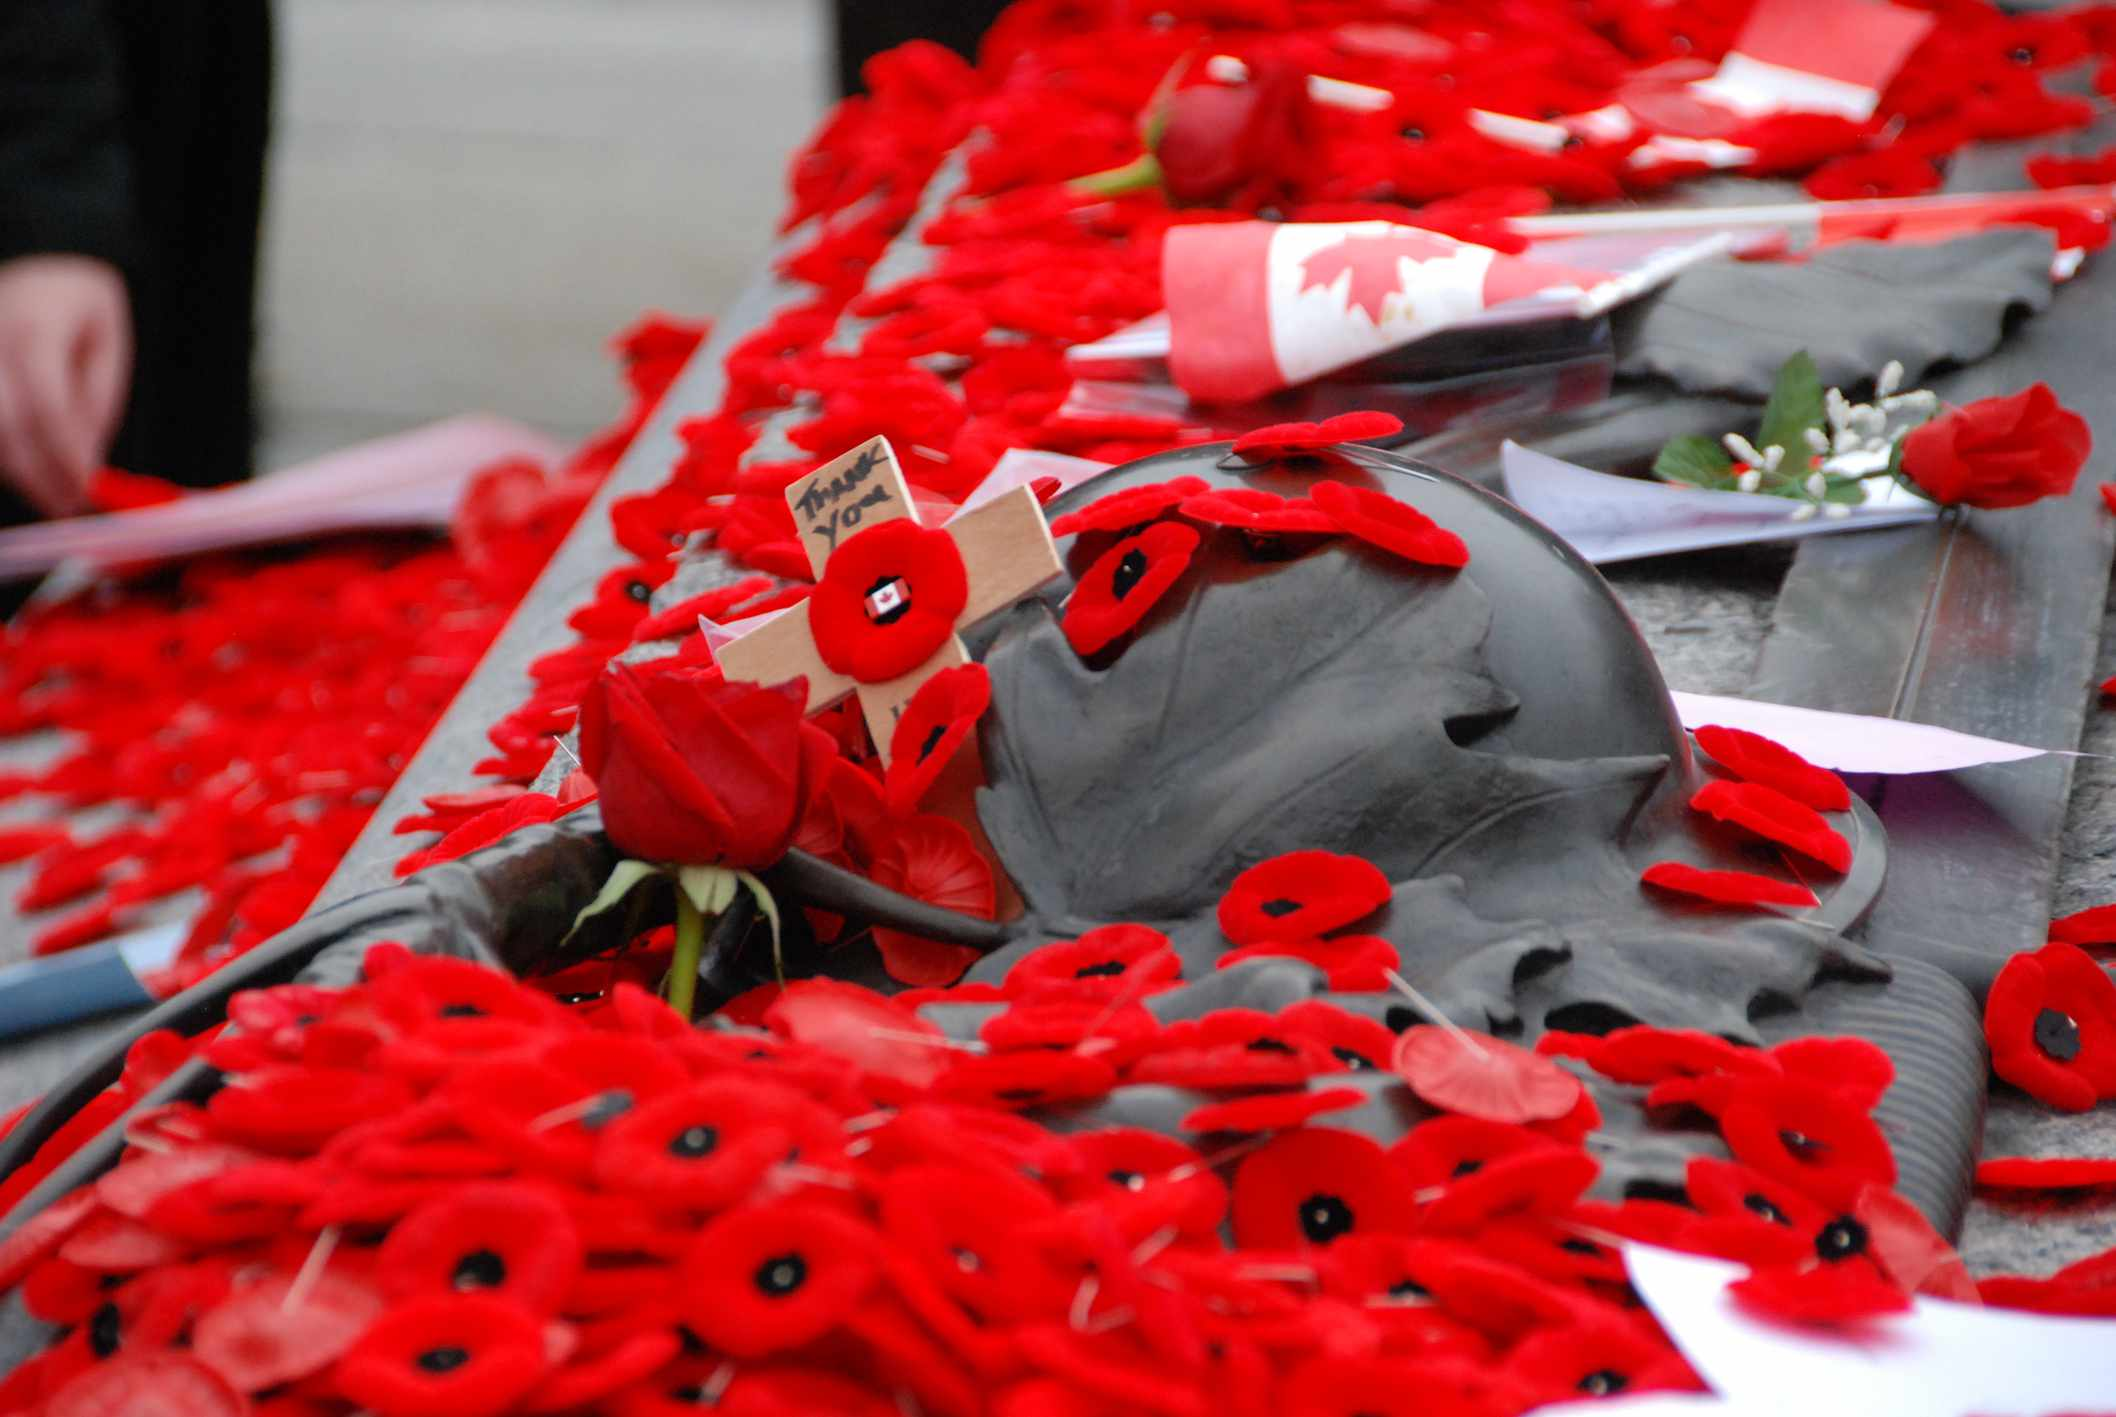 Remembrance Day memorial with poppies and roses in Ottawa, Ontario